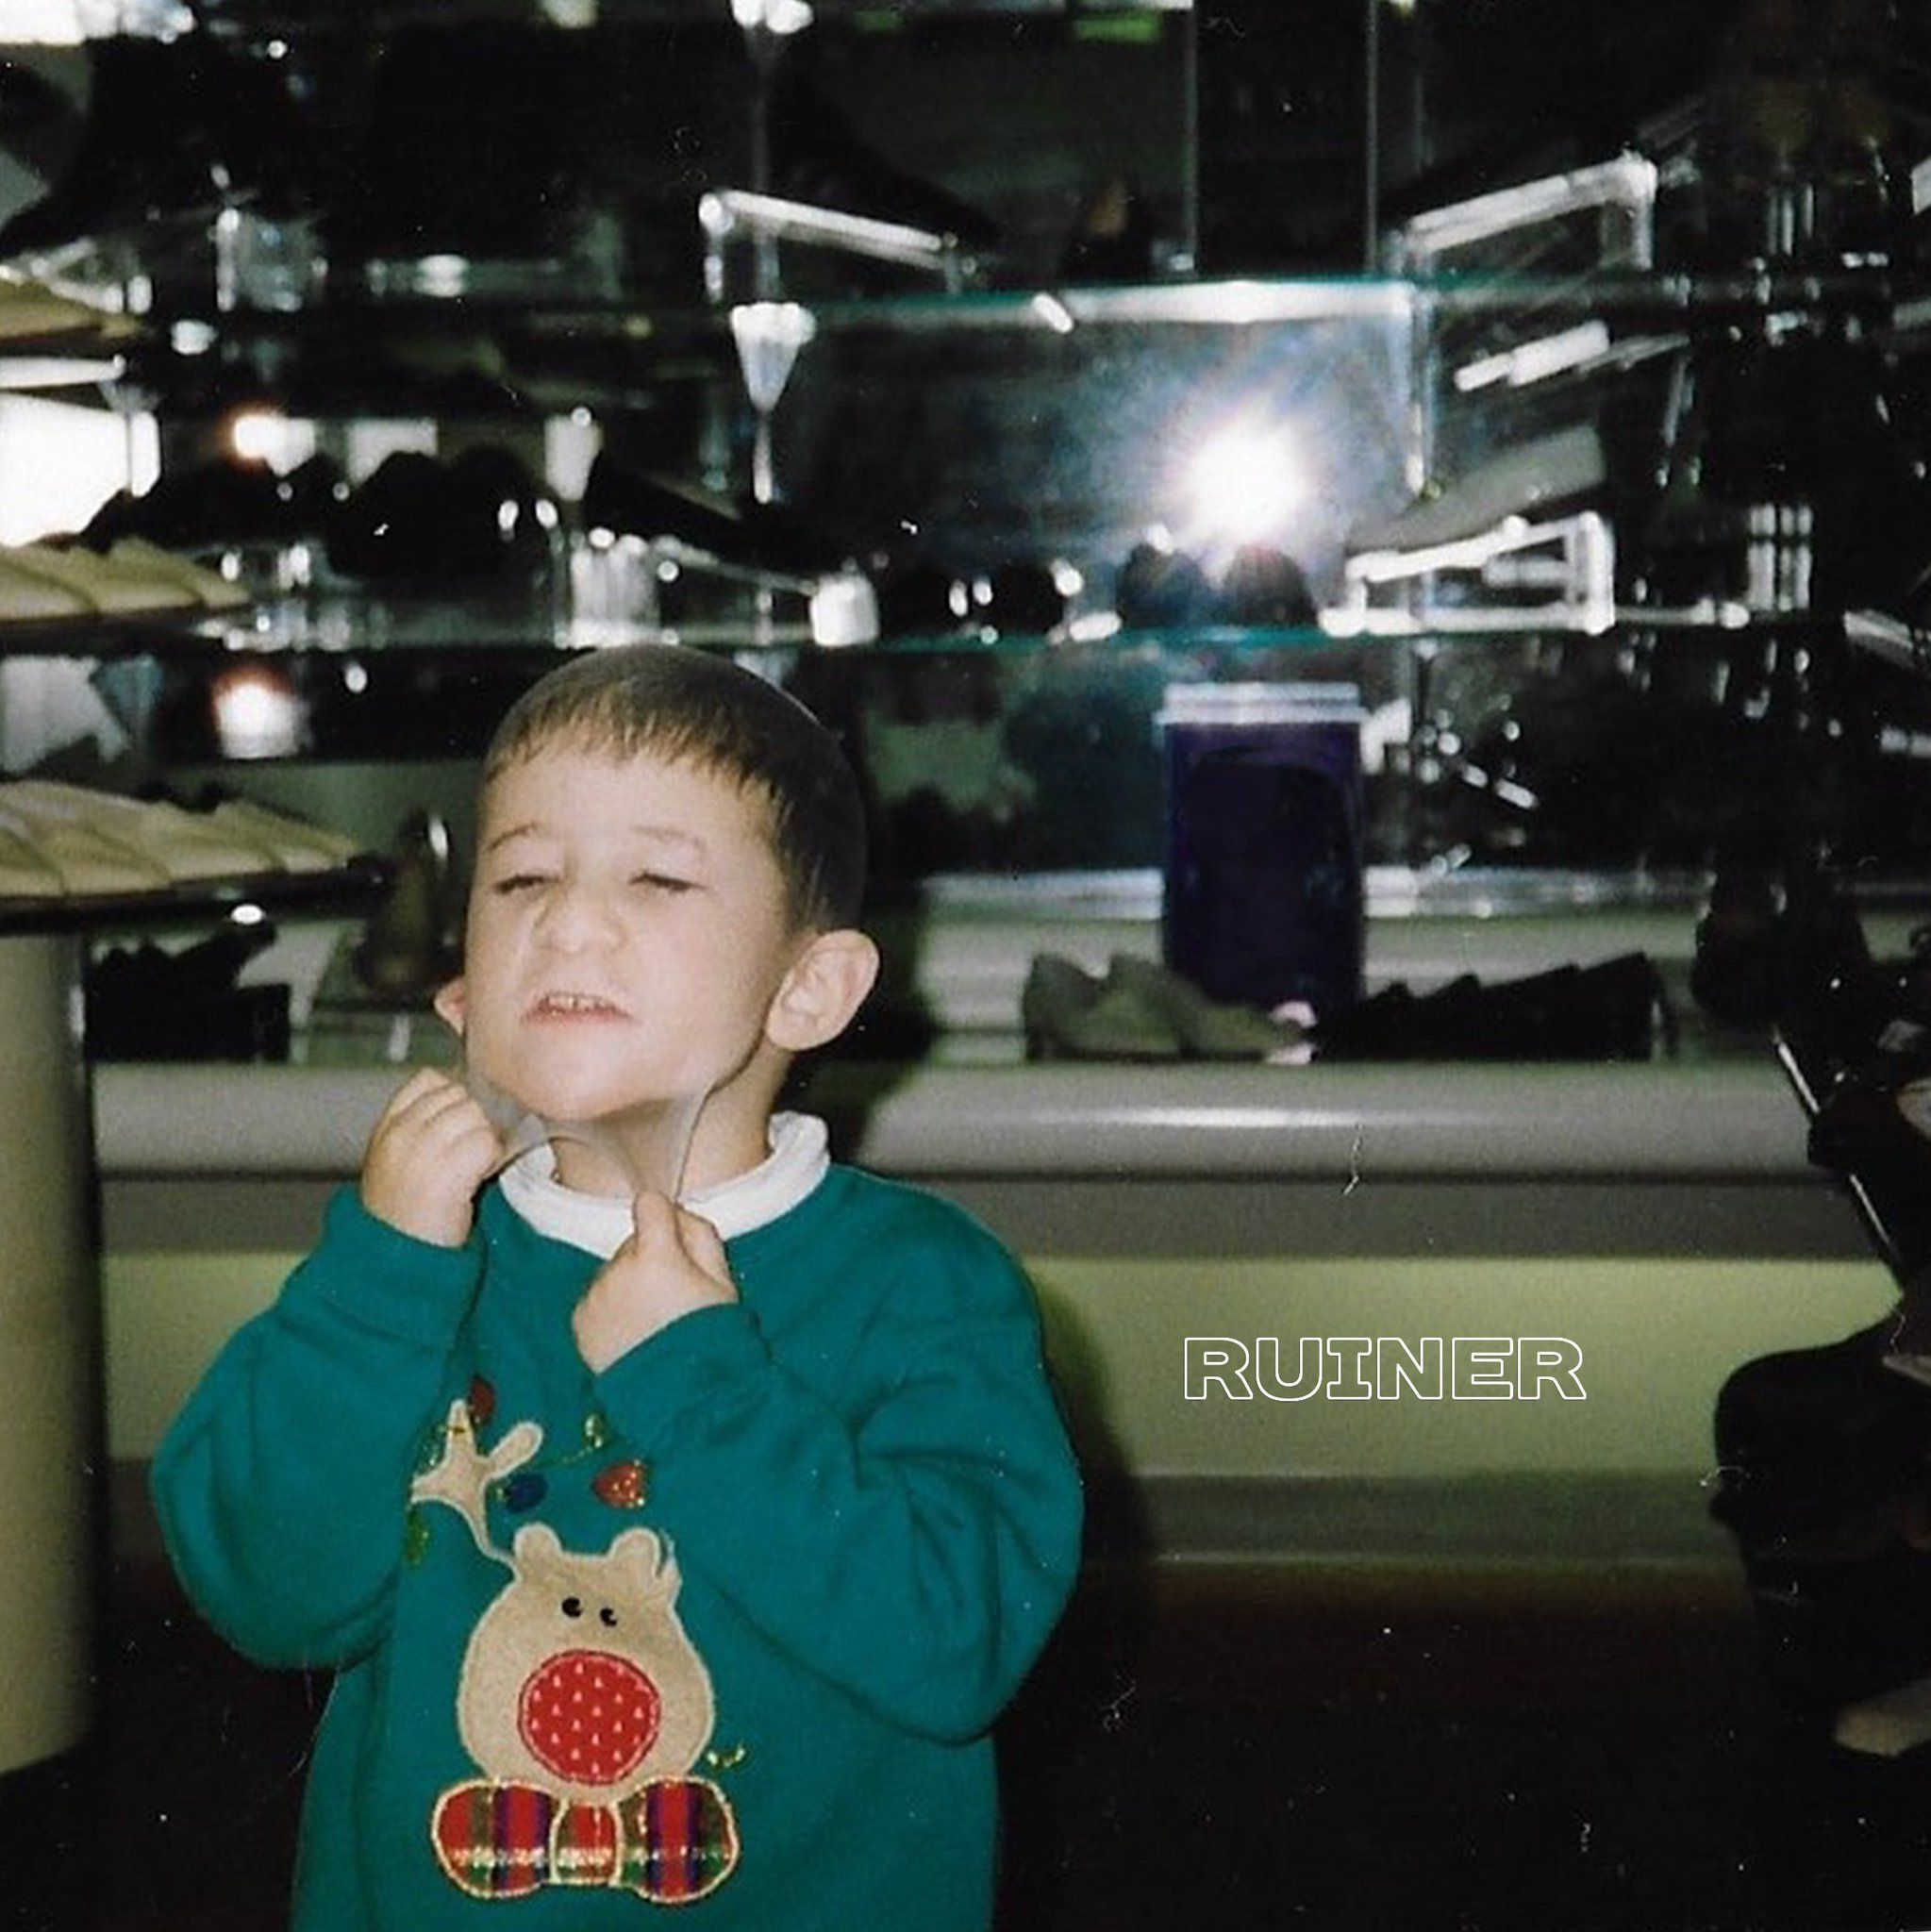 .@nothingnowhere's new album ruiner is available NOW!  Download / stream ruiner today - https://t.co/MA3i5OuazY https://t.co/gNmLzsLXdr